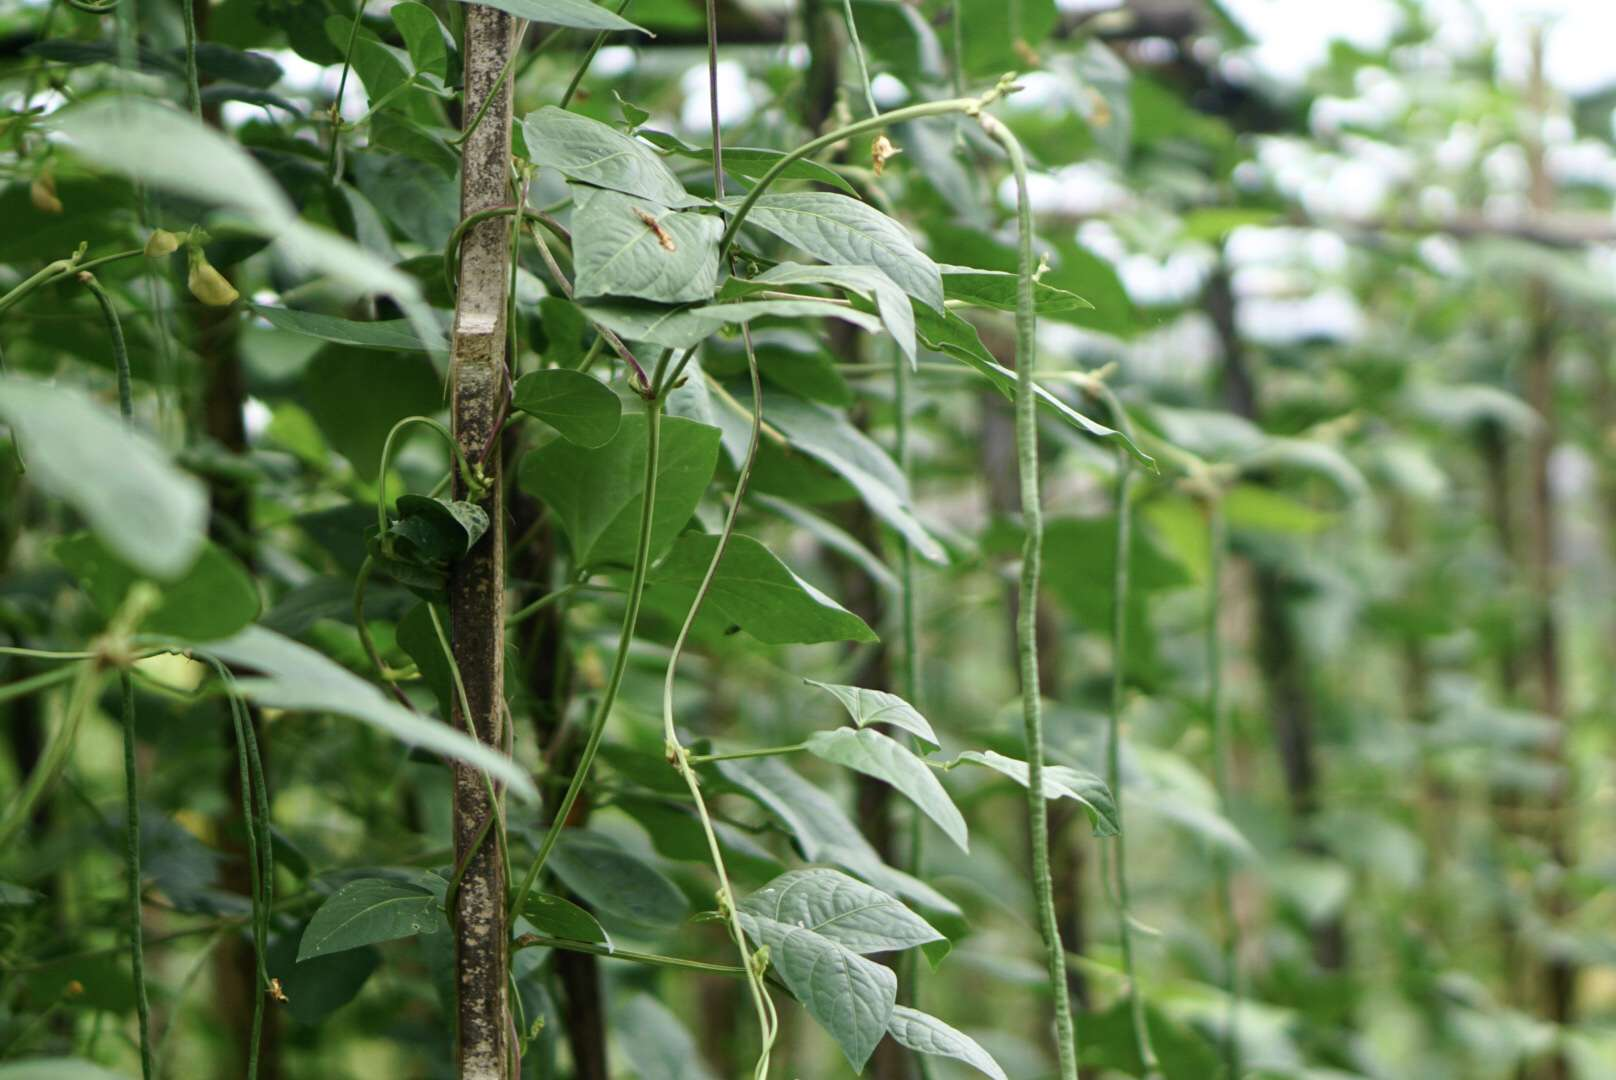 Yardlong bean plant with vines and large leaves trailing tree branch